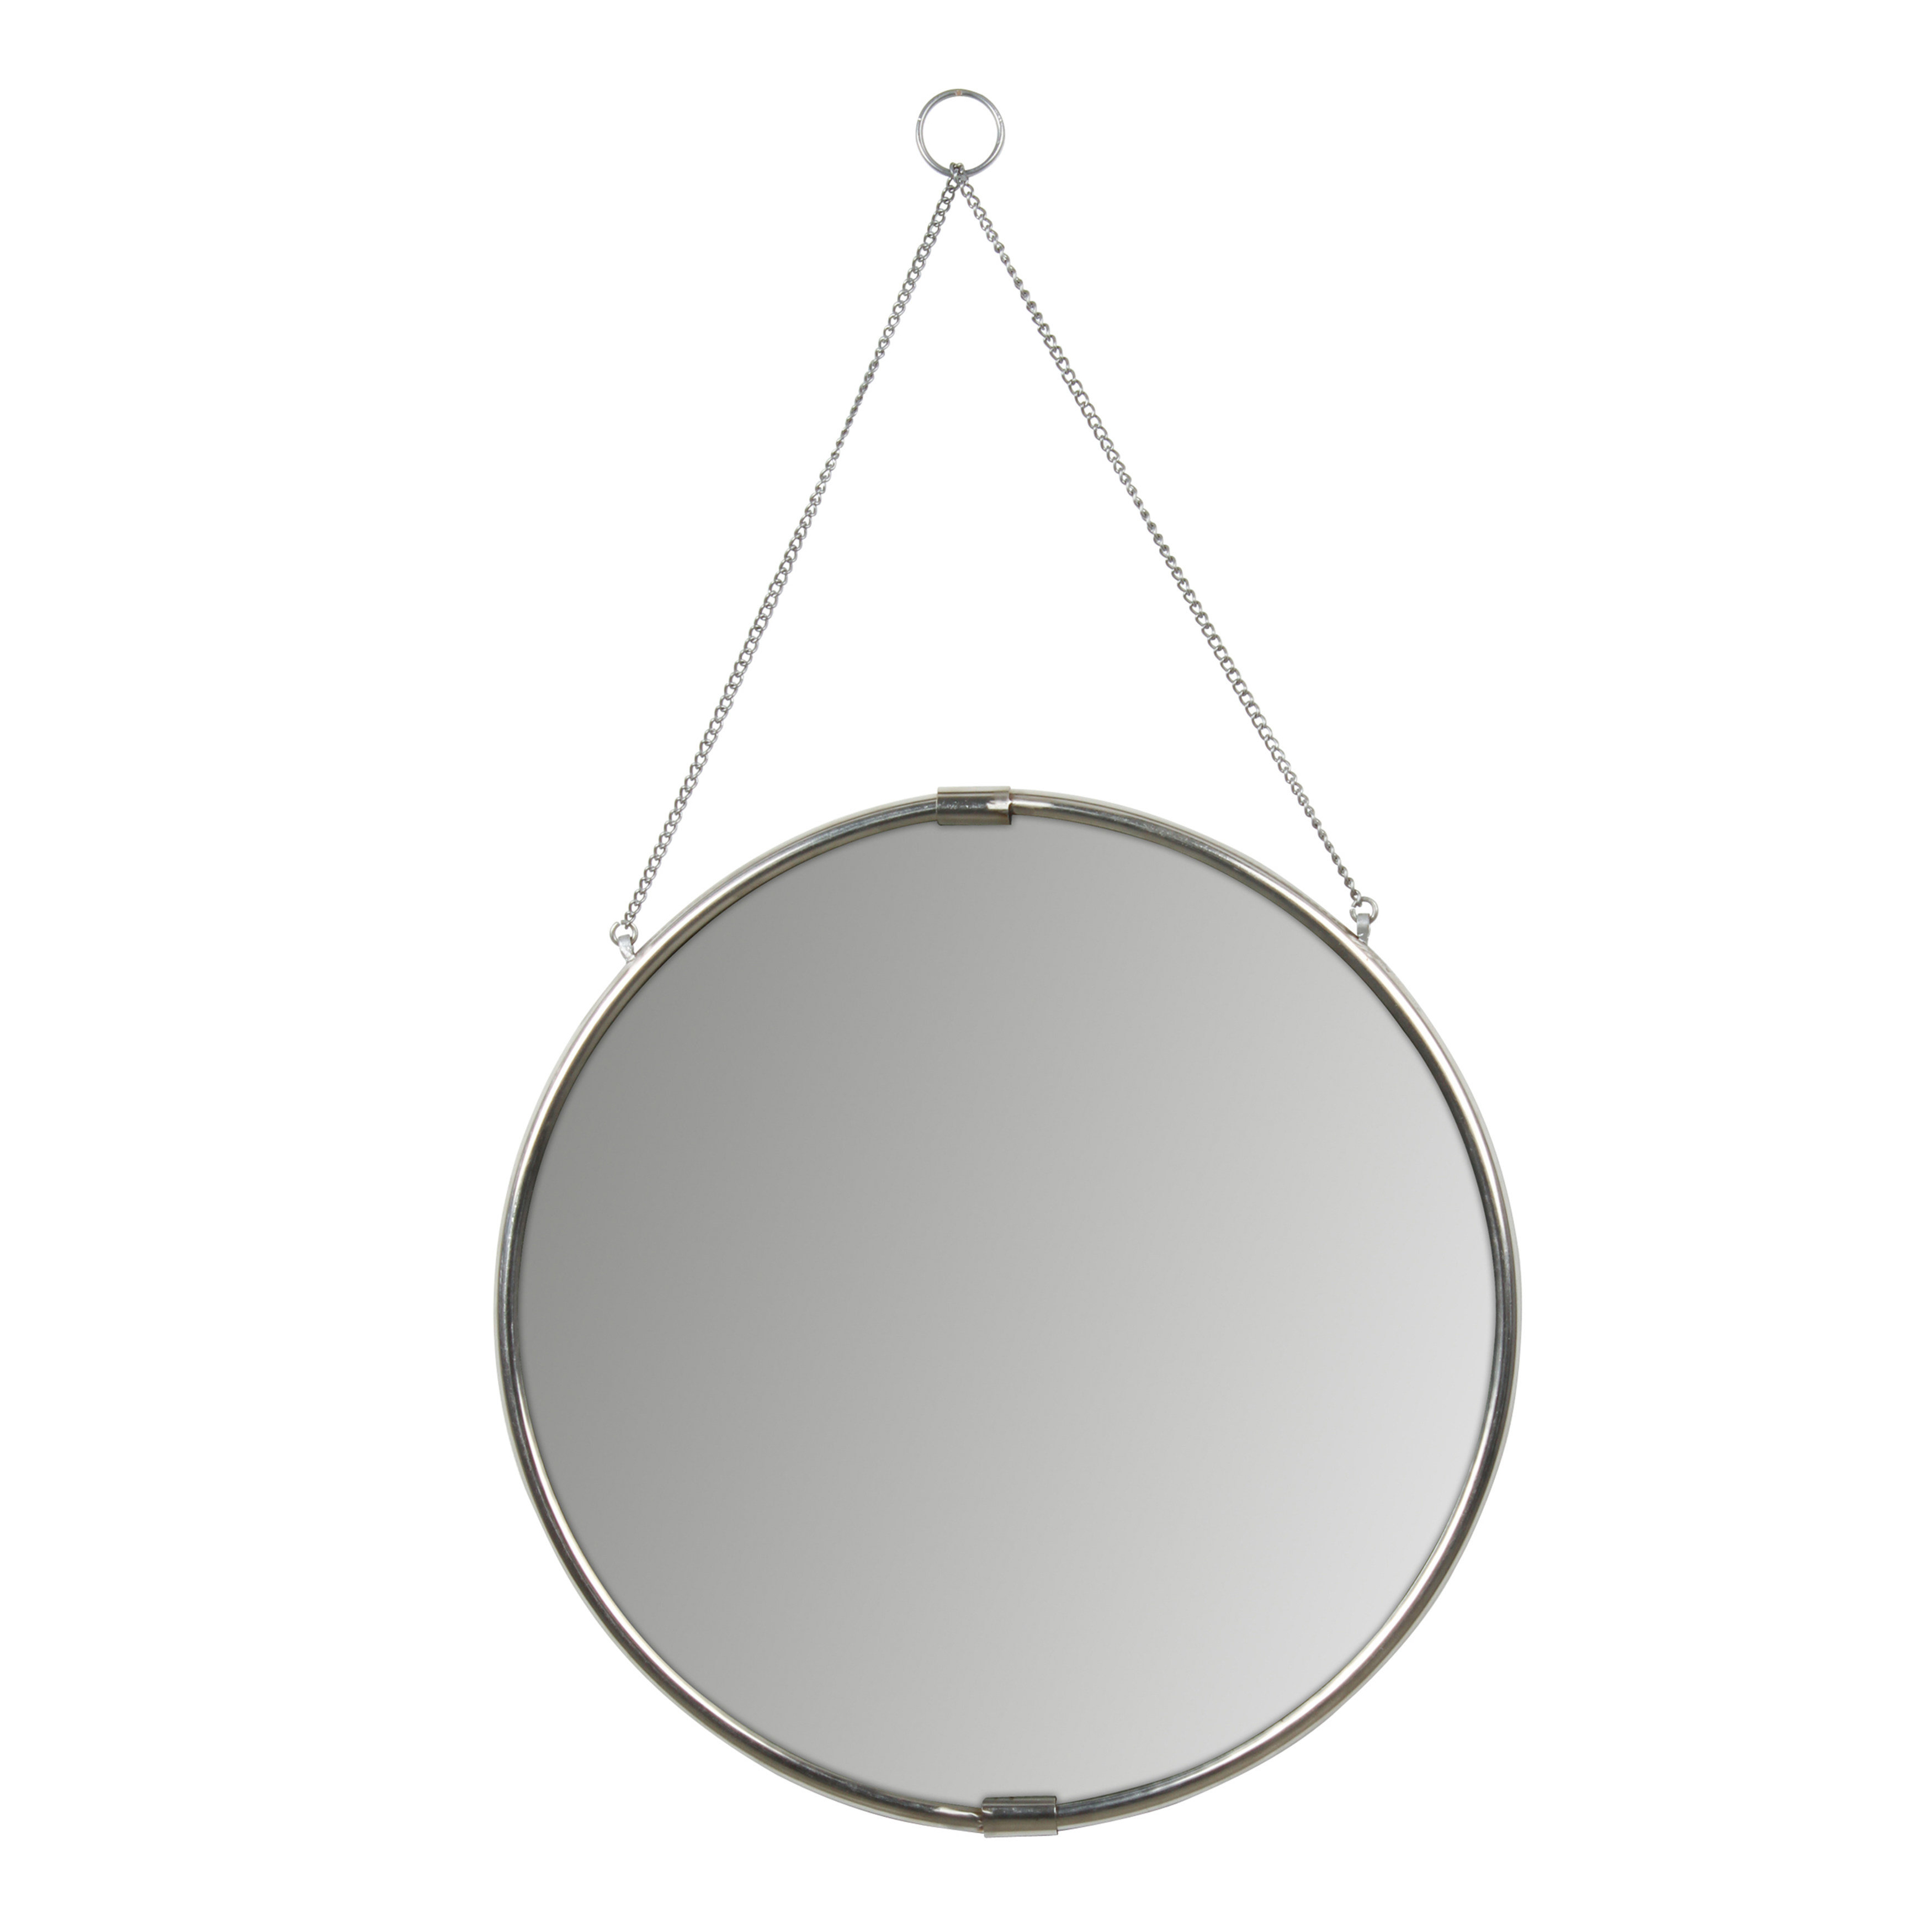 Brea Decorative Round Hanging Modern & Contemporary Wall Mirror Intended For Current Decorative Contemporary Wall Mirrors (View 1 of 20)